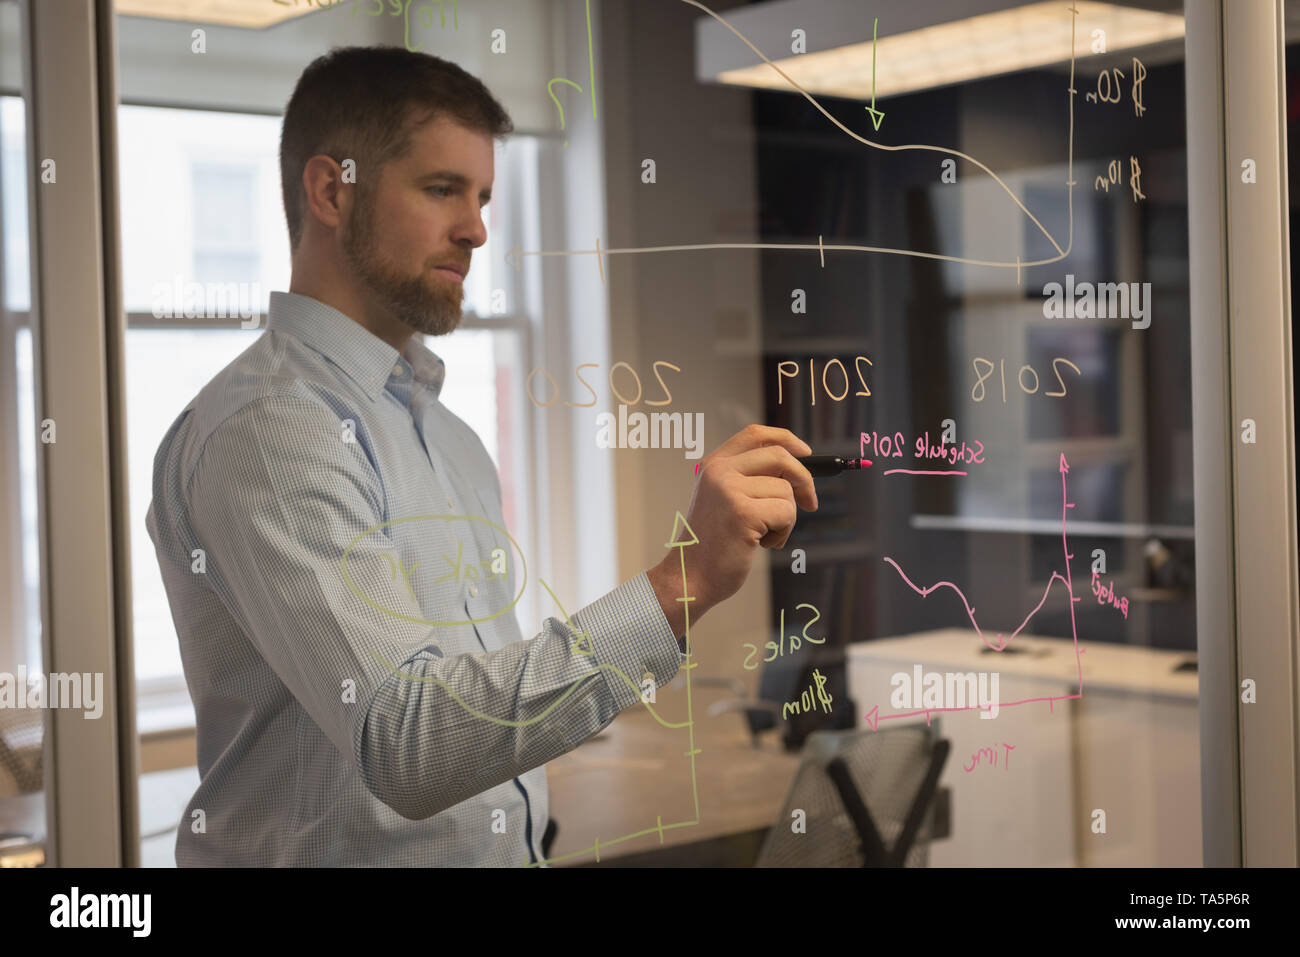 Businessman writing on glass wall - Stock Image